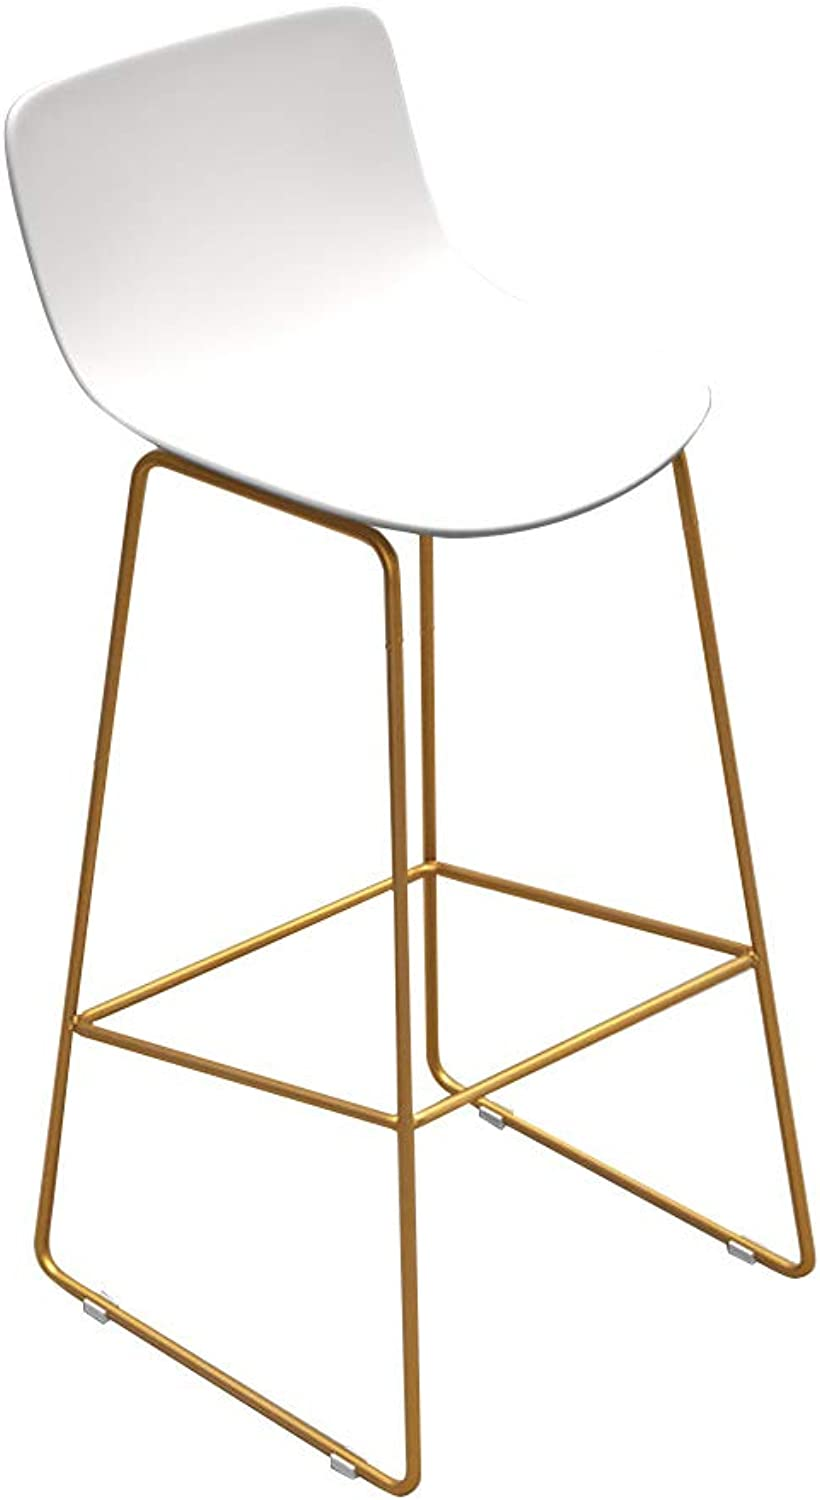 Barstools Chair with Back and Footrest Upholstered Side Dining Chairs for Kitchen Pub Bar Bistro Café Counter Height Stool   PP Seat and gold Metal Legs